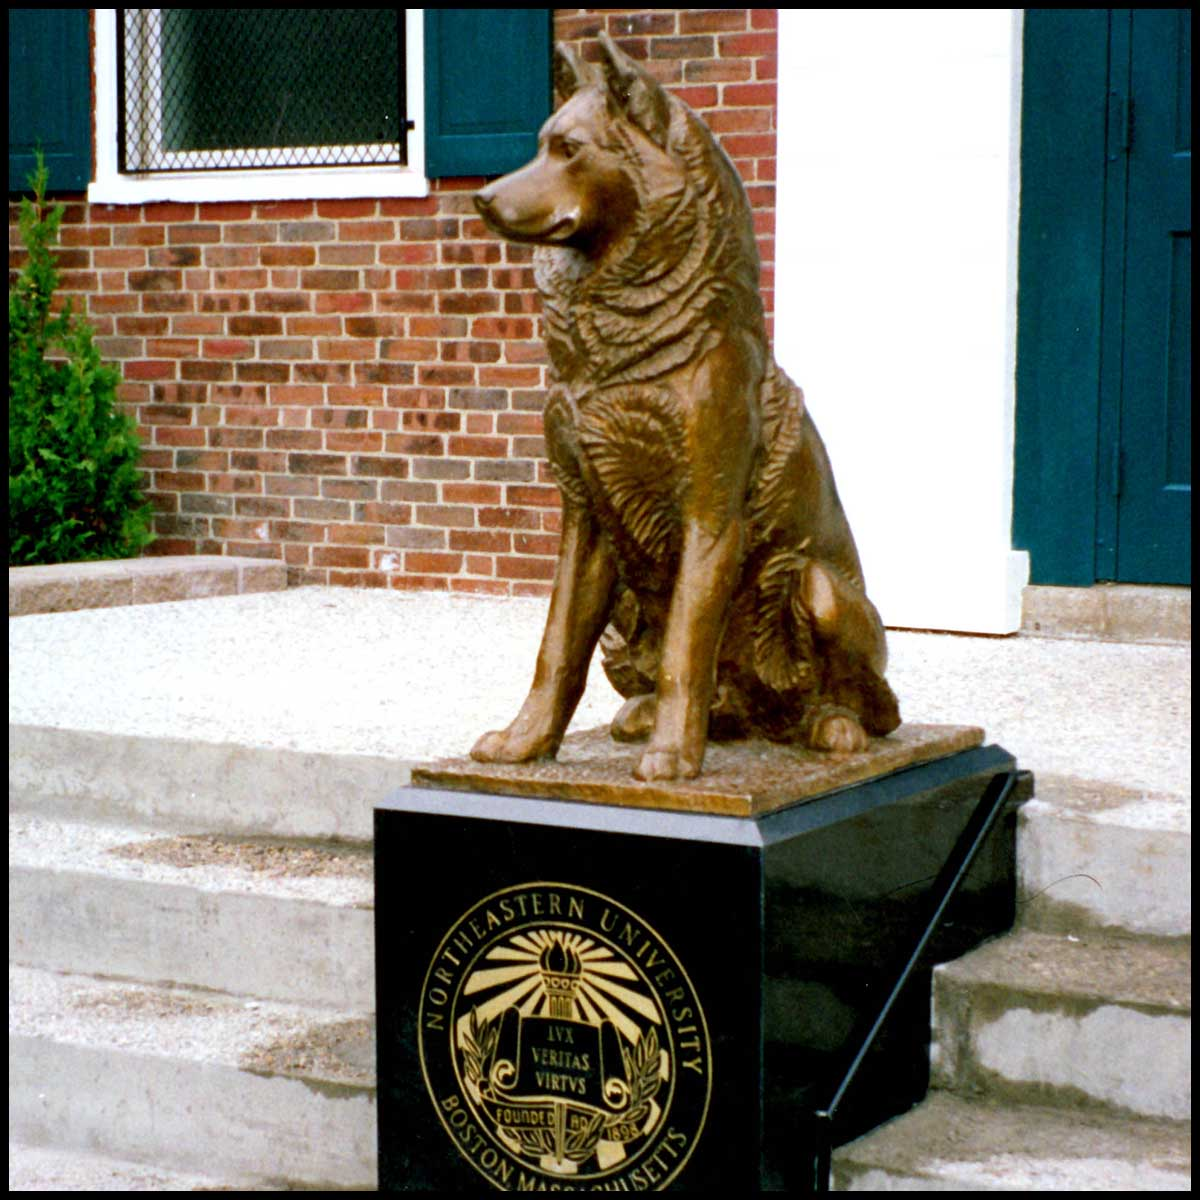 photo of bronze-colored sculpture of seated husky on black base with school logo on staircase